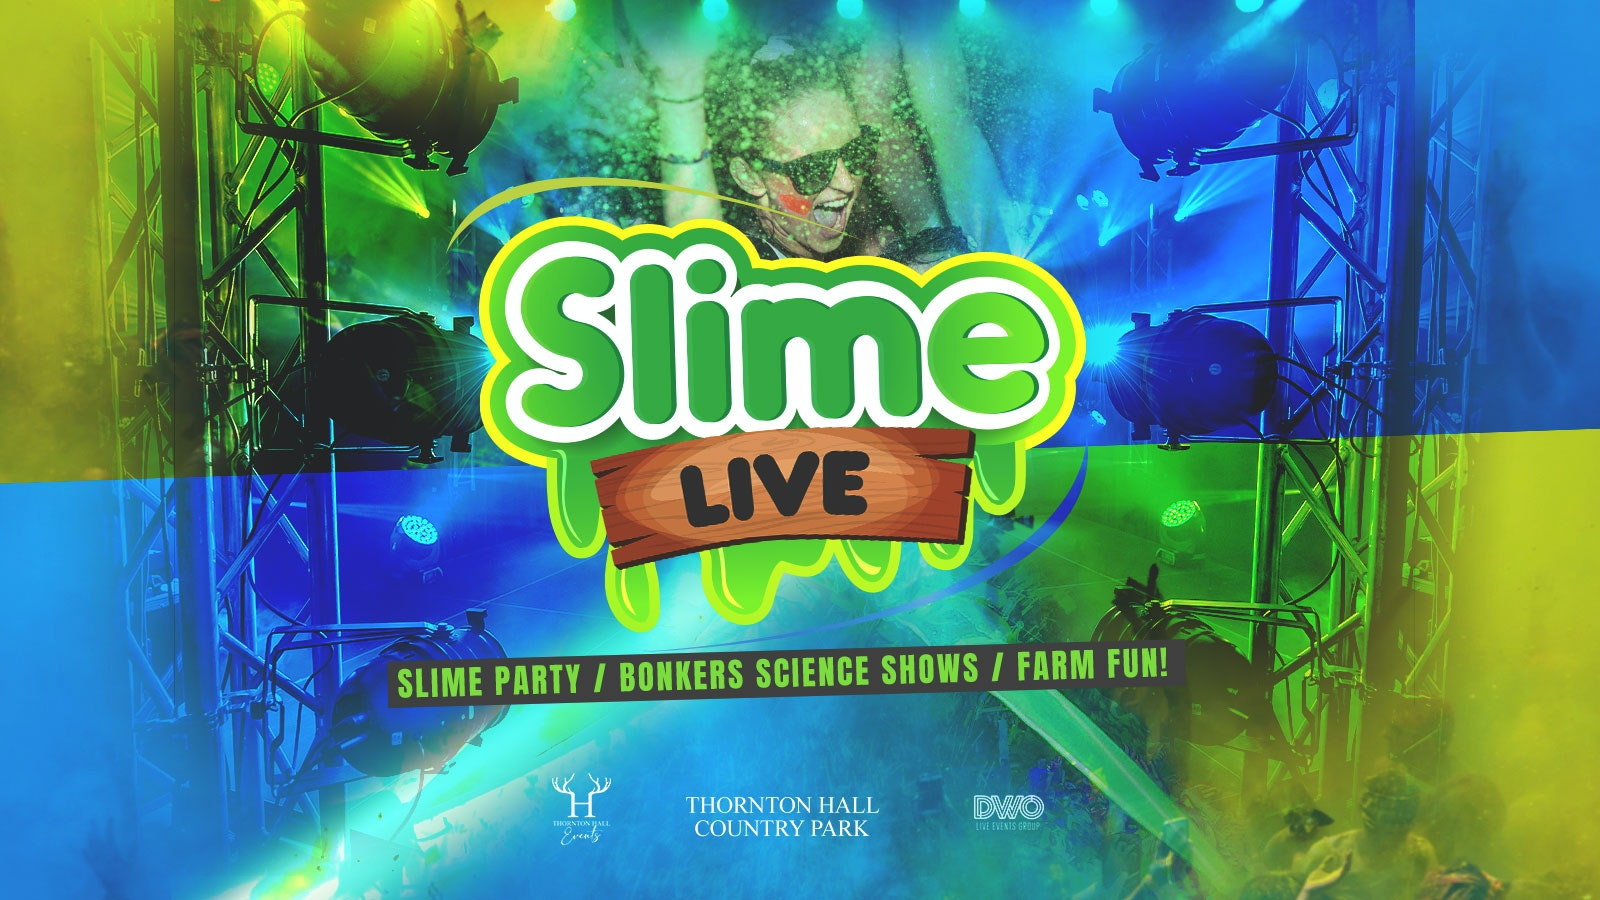 Slime Live (including Farm Park Entry) – Monday 16th August – All Day Ticket